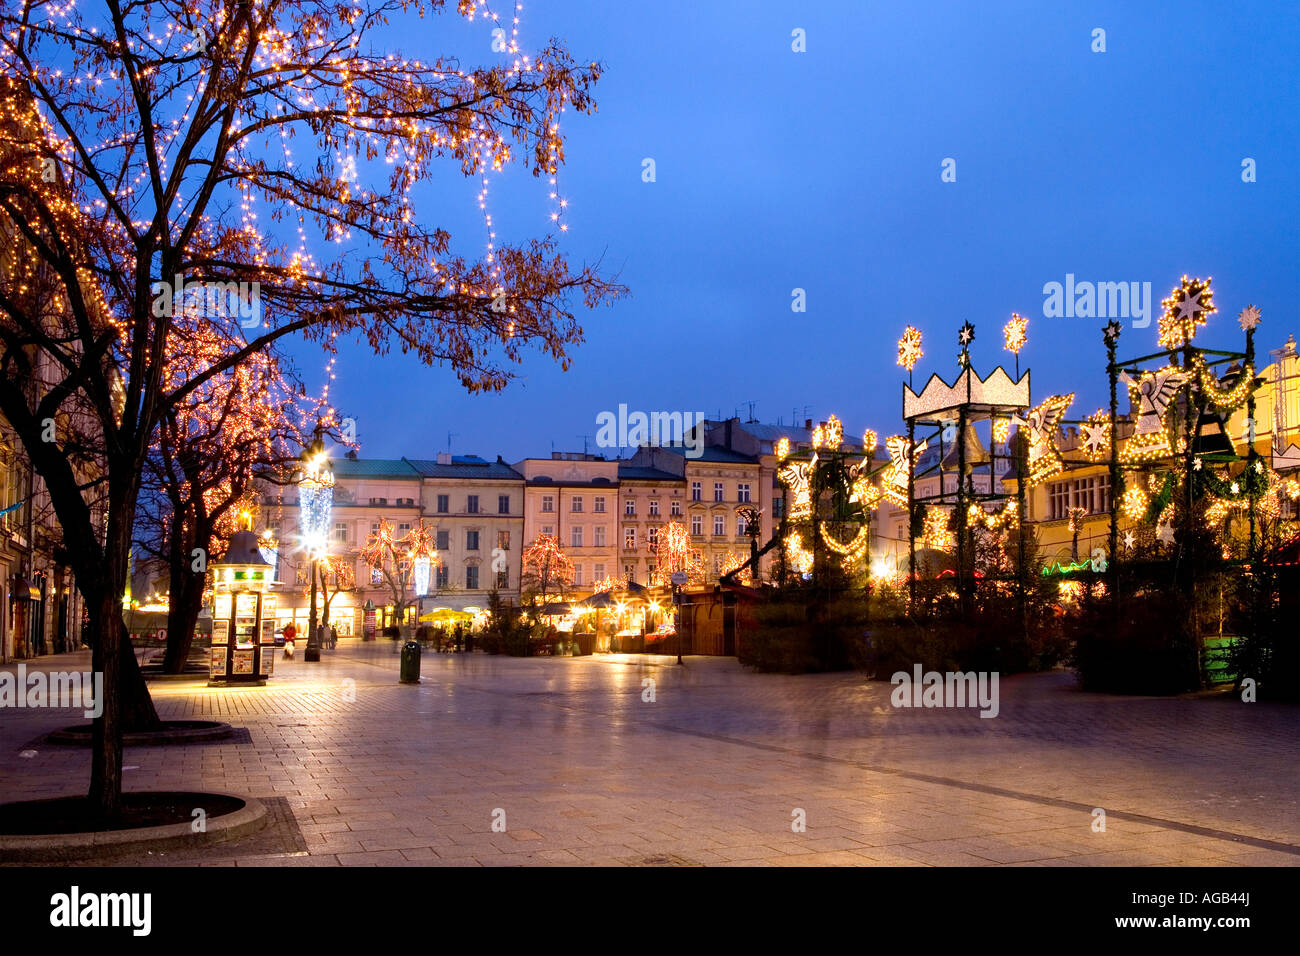 christmas market in rynek glowny stockfotos christmas market in rynek glowny bilder alamy. Black Bedroom Furniture Sets. Home Design Ideas